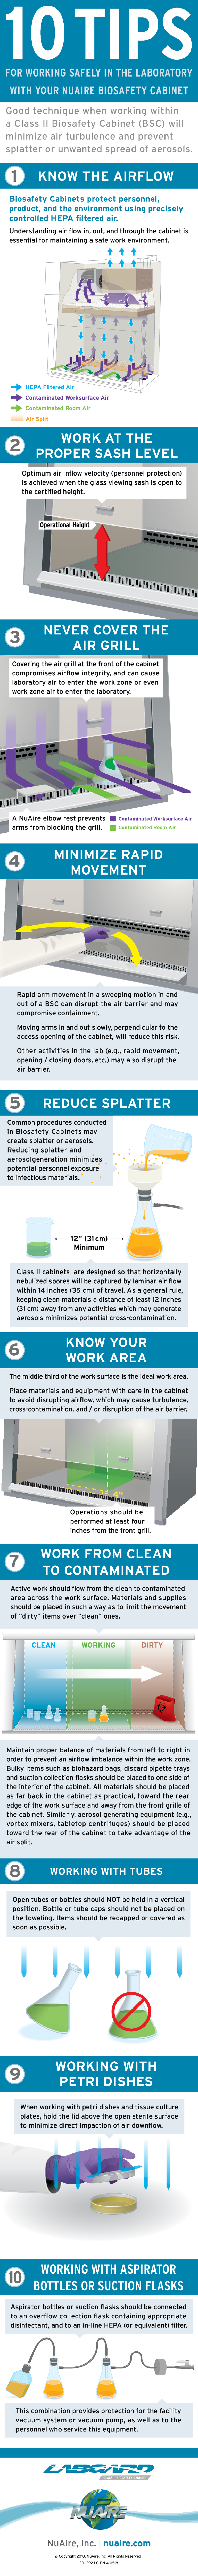 10 Tips for Working Safely in the laboratory with Your Biosafety Cabinet